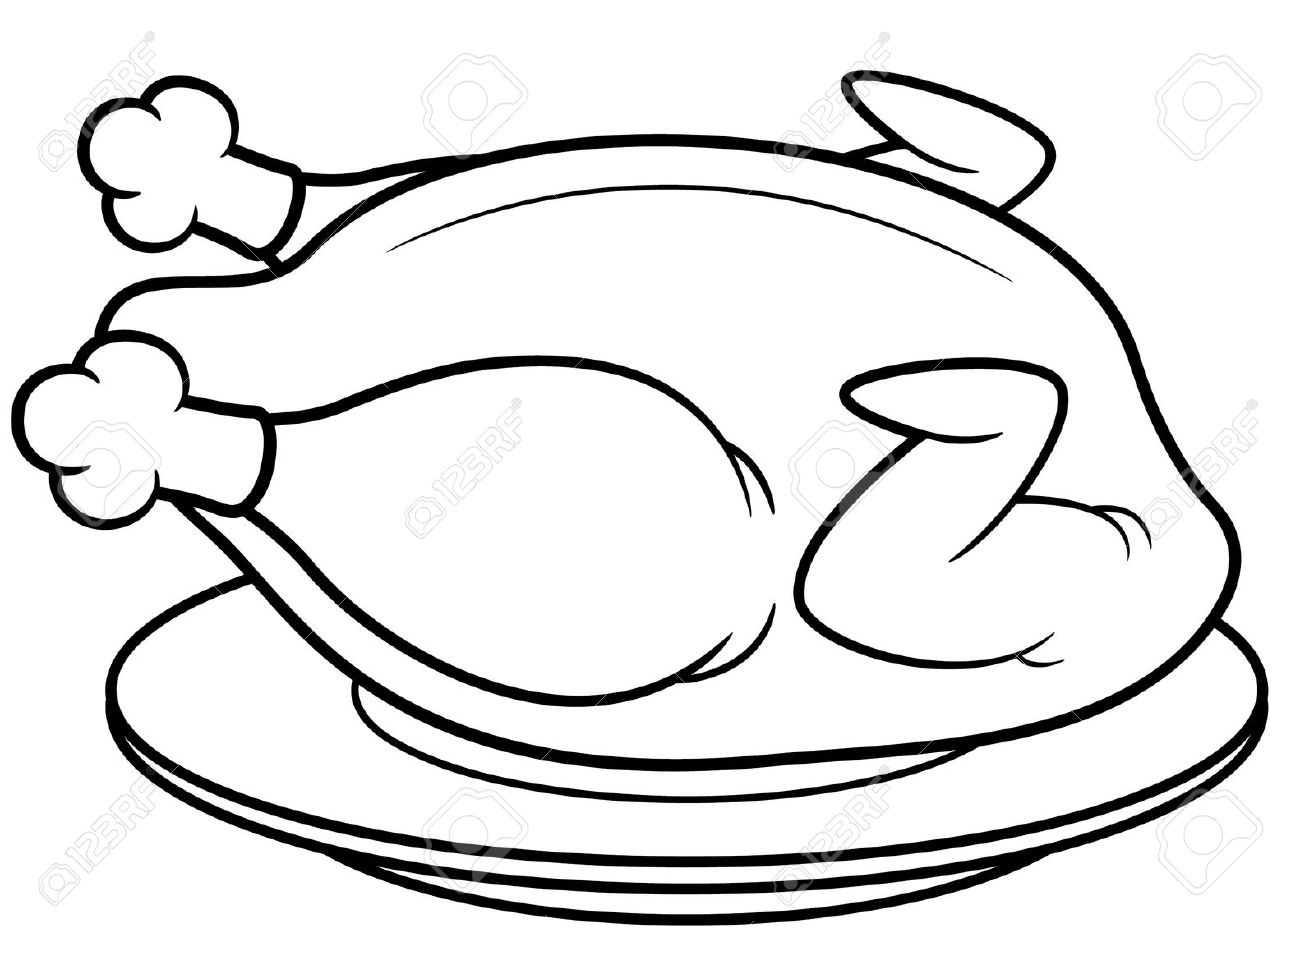 1300x974 Food Clipart Black And White